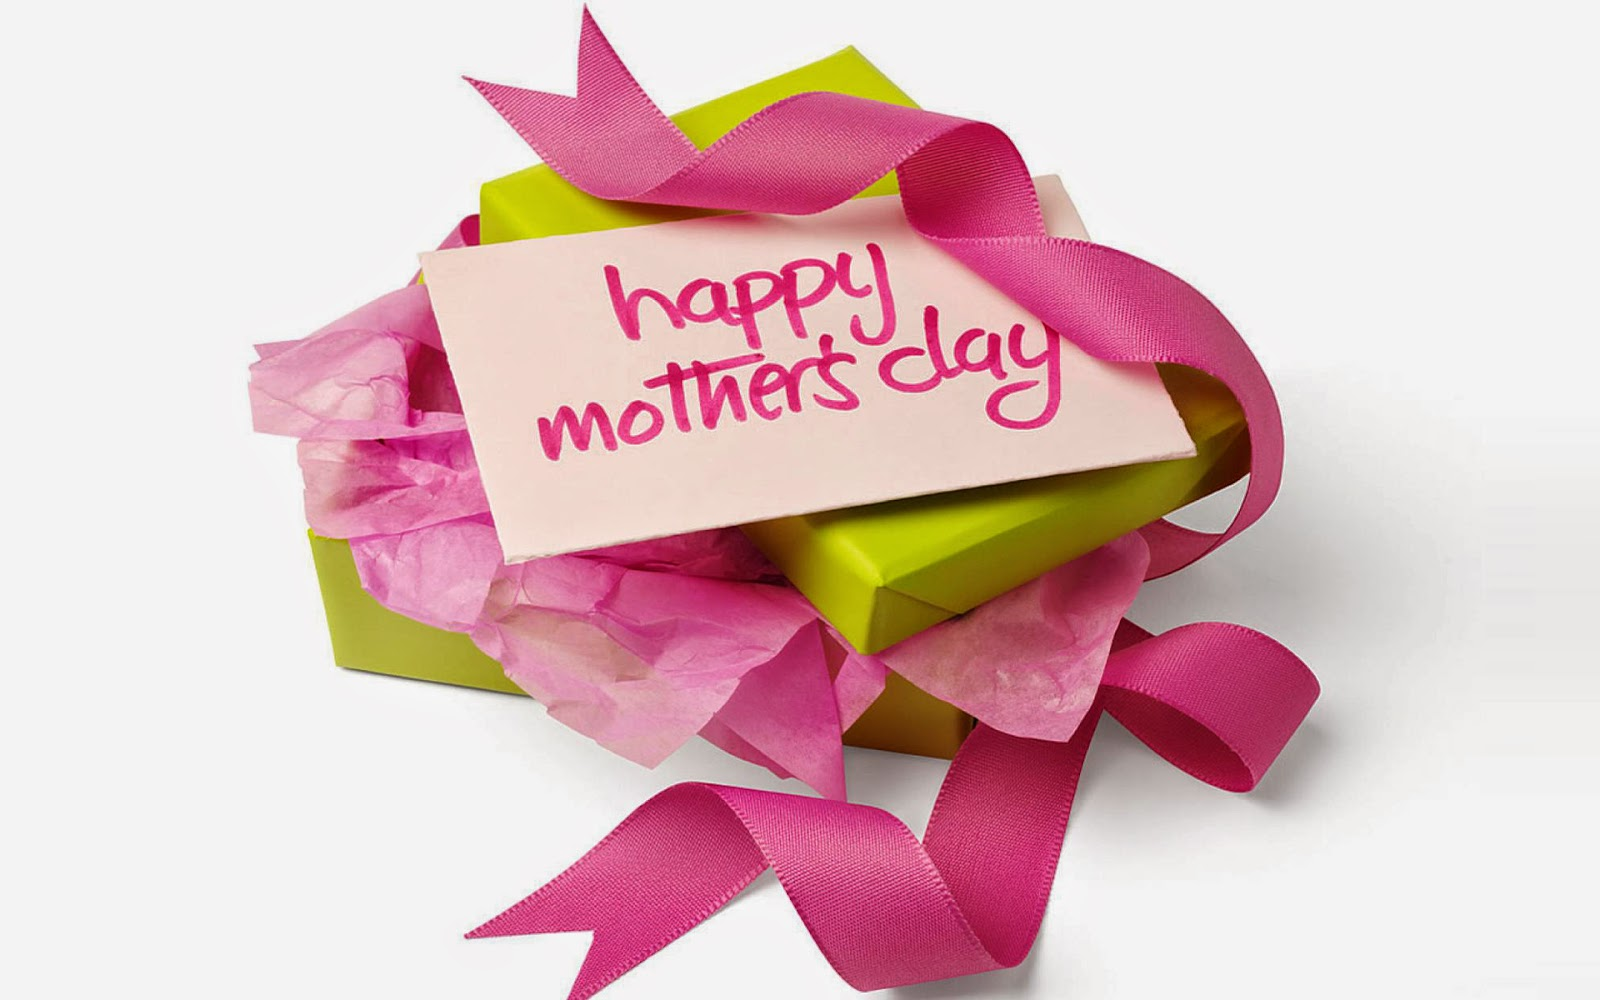 Send Mothers Day Gifts, Flowers, Cards, Greetings